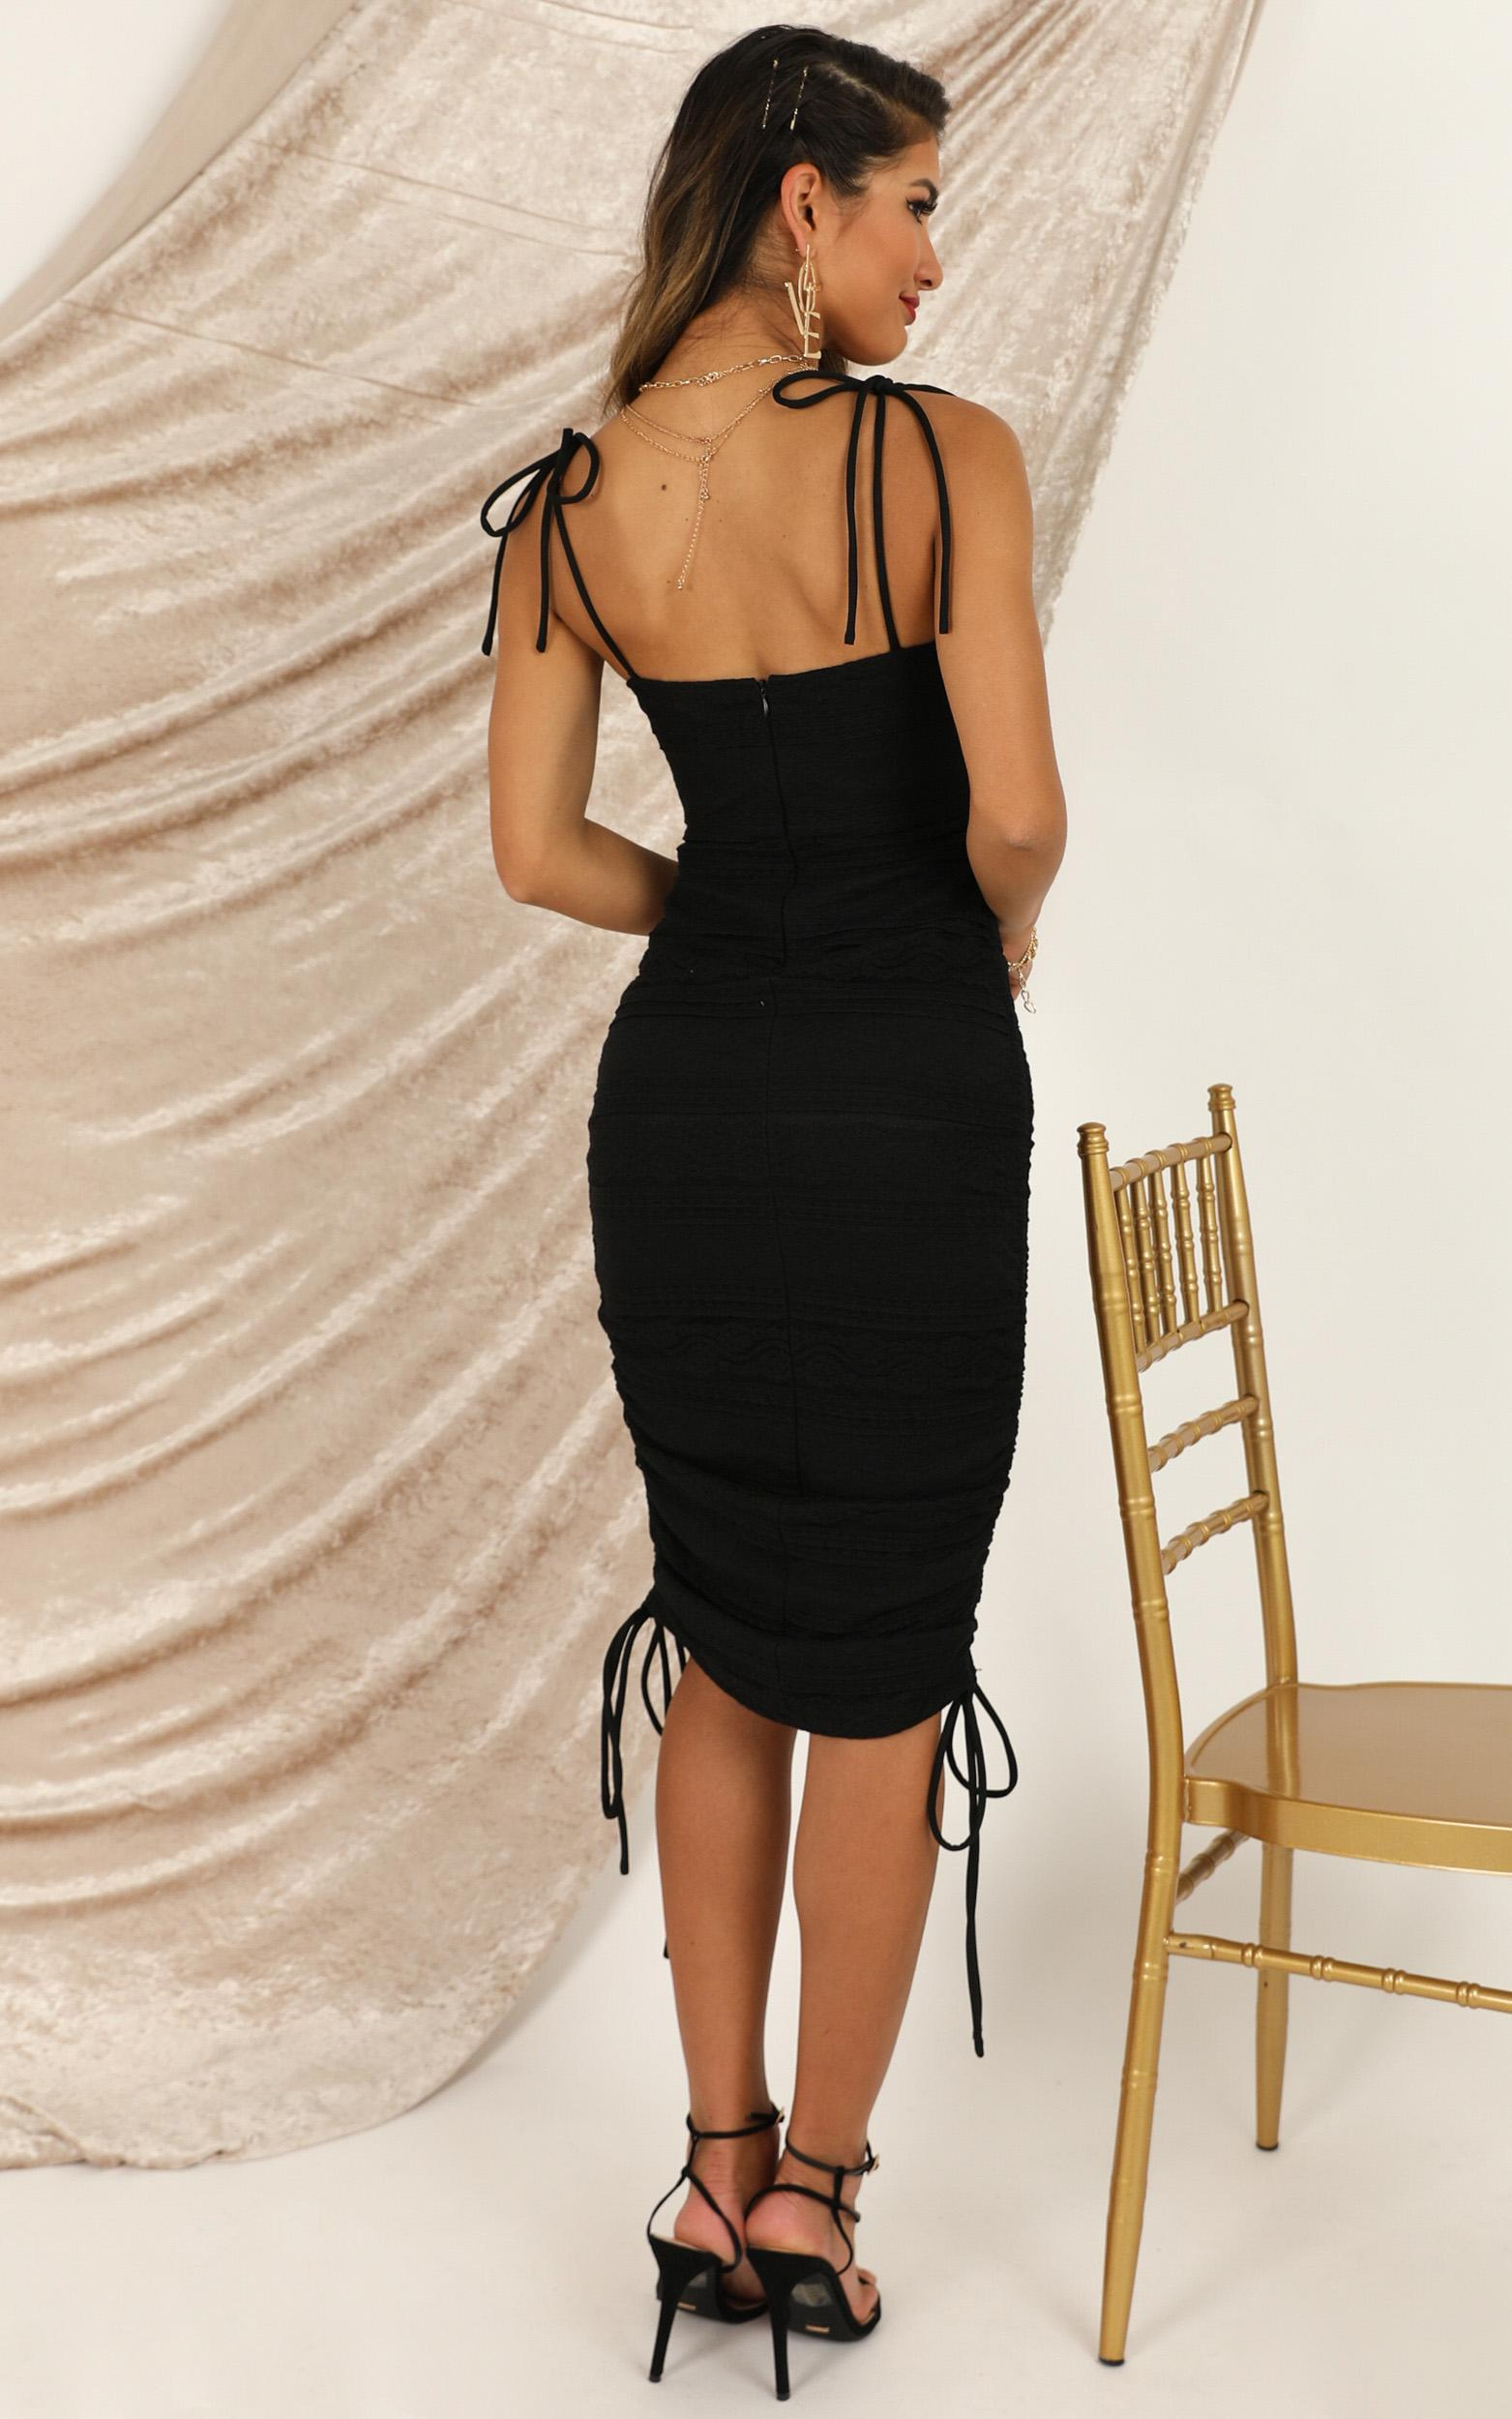 Dont Slip Away Dress In black lace - 20 (XXXXL), Black, hi-res image number null